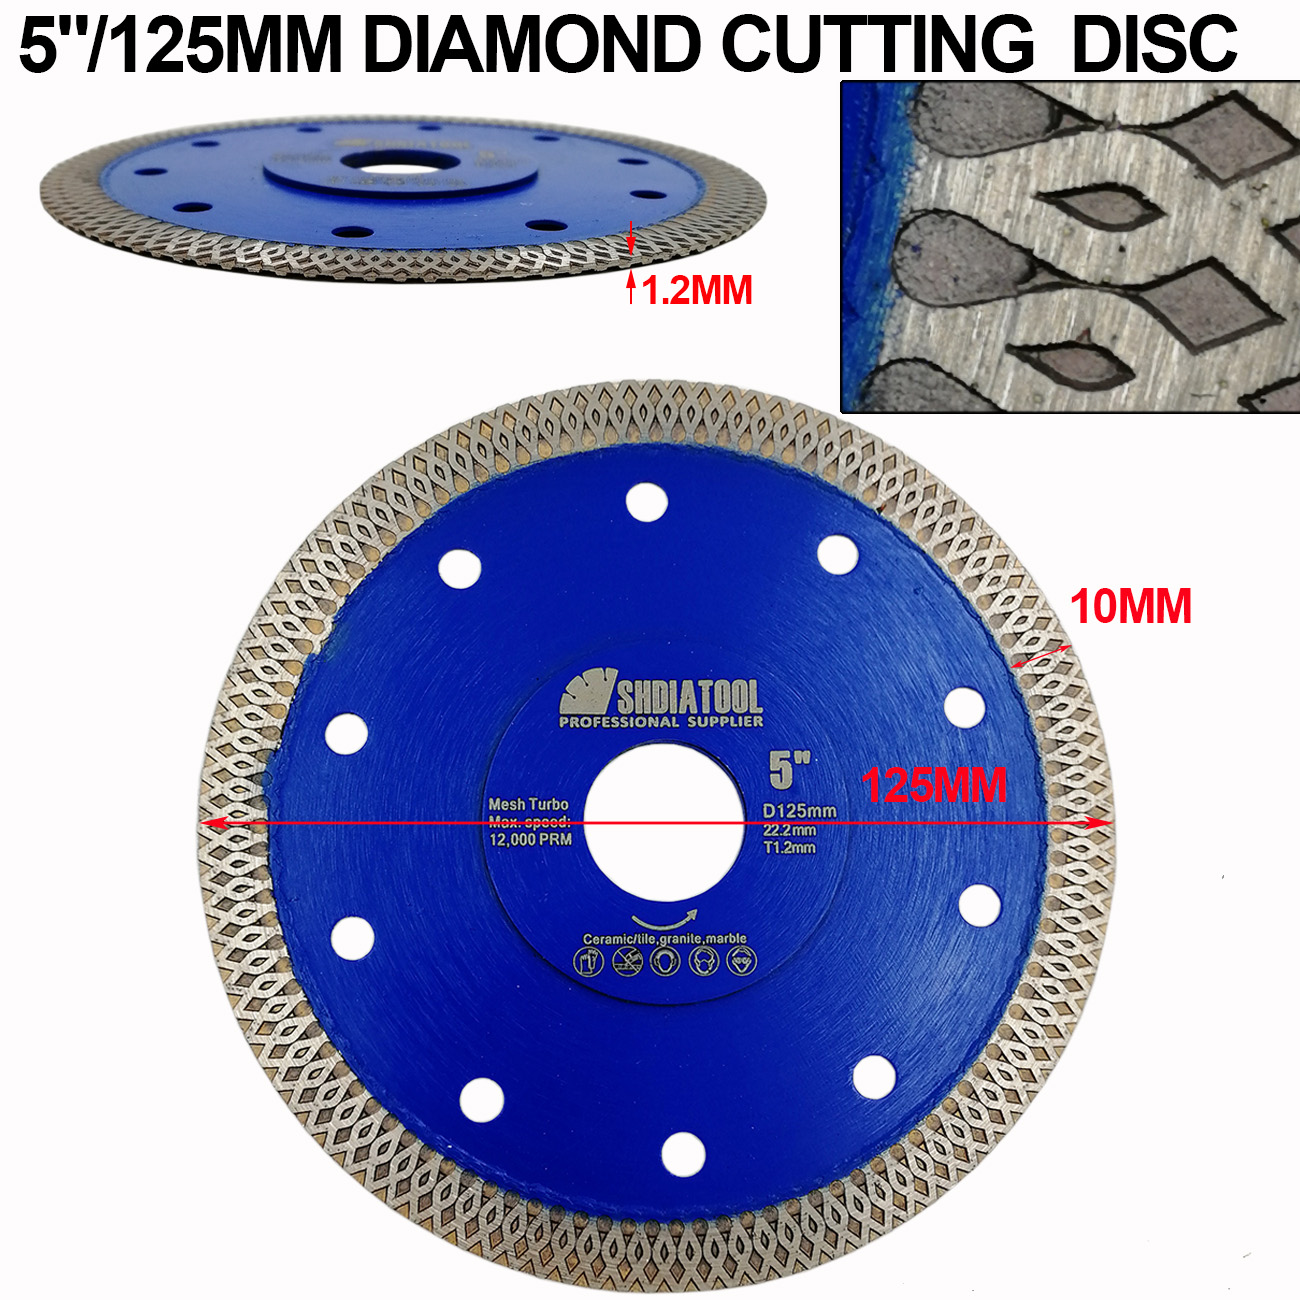 "Купить с кэшбэком Dia 4"" 4.5"" 5"" 7"" 8'' 9"" 10"" 12"" Hot pressed sintered X Mesh Diamond Saw blades Marble Tile Ceramic circular saw Cutting blades"